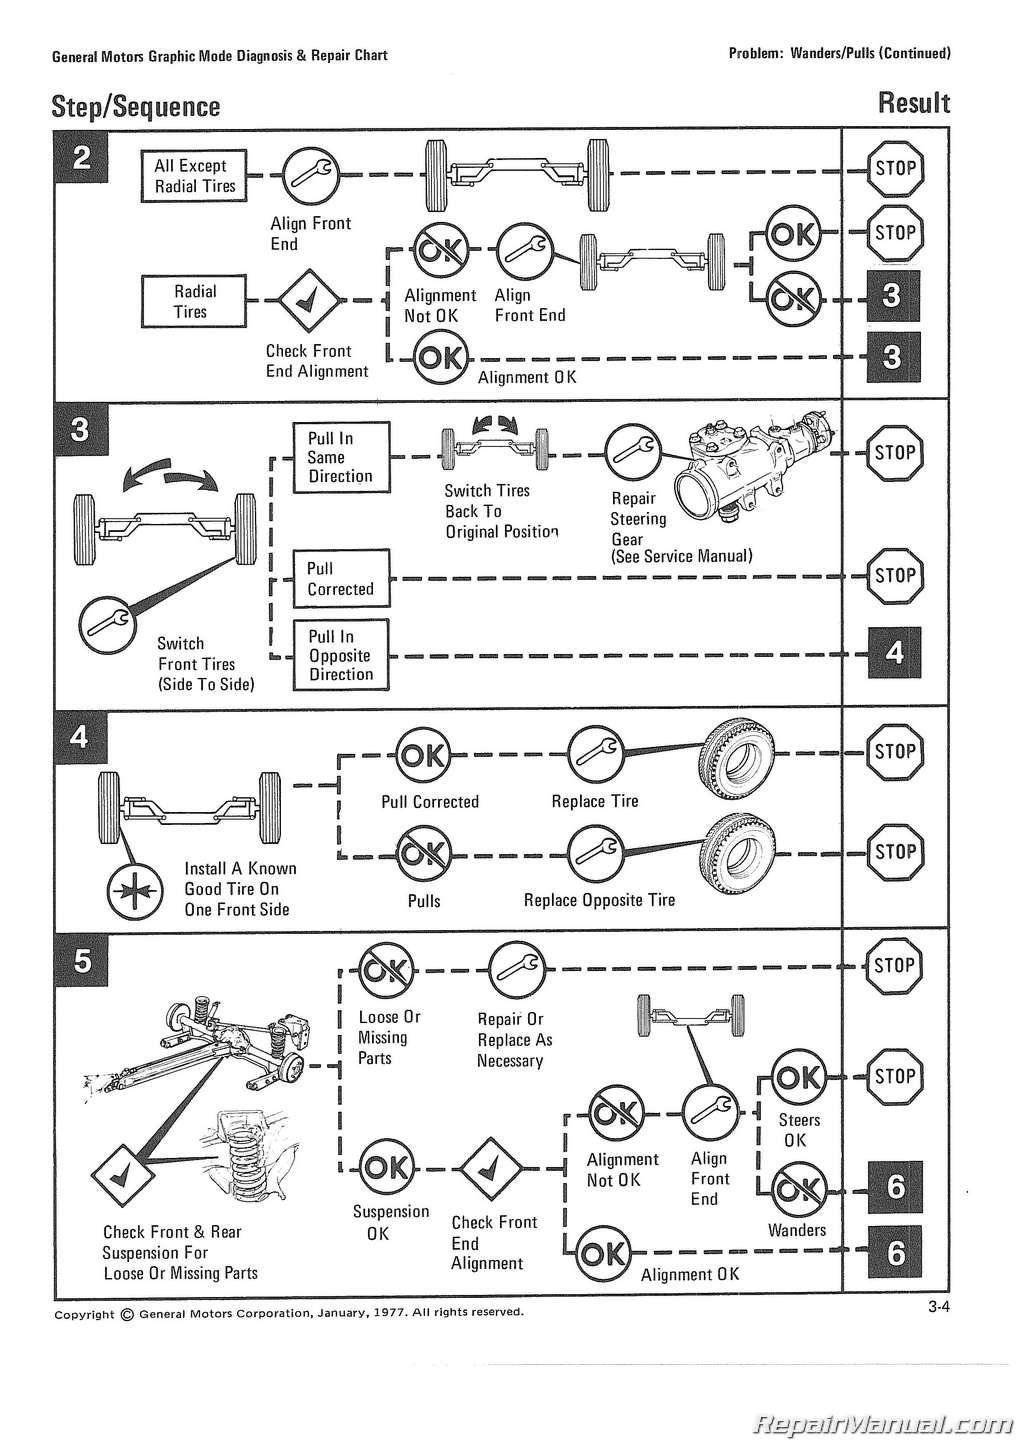 51 Chevy 3100 Wiring Diagram as well 1940 Chevy Vin Location in addition 1940 Ford Wiring Diagram moreover Grand Cherokee 4 7 Engine Vacuum Diagram also Flathead drawings electrical. on 1938 chevy wiring diagram